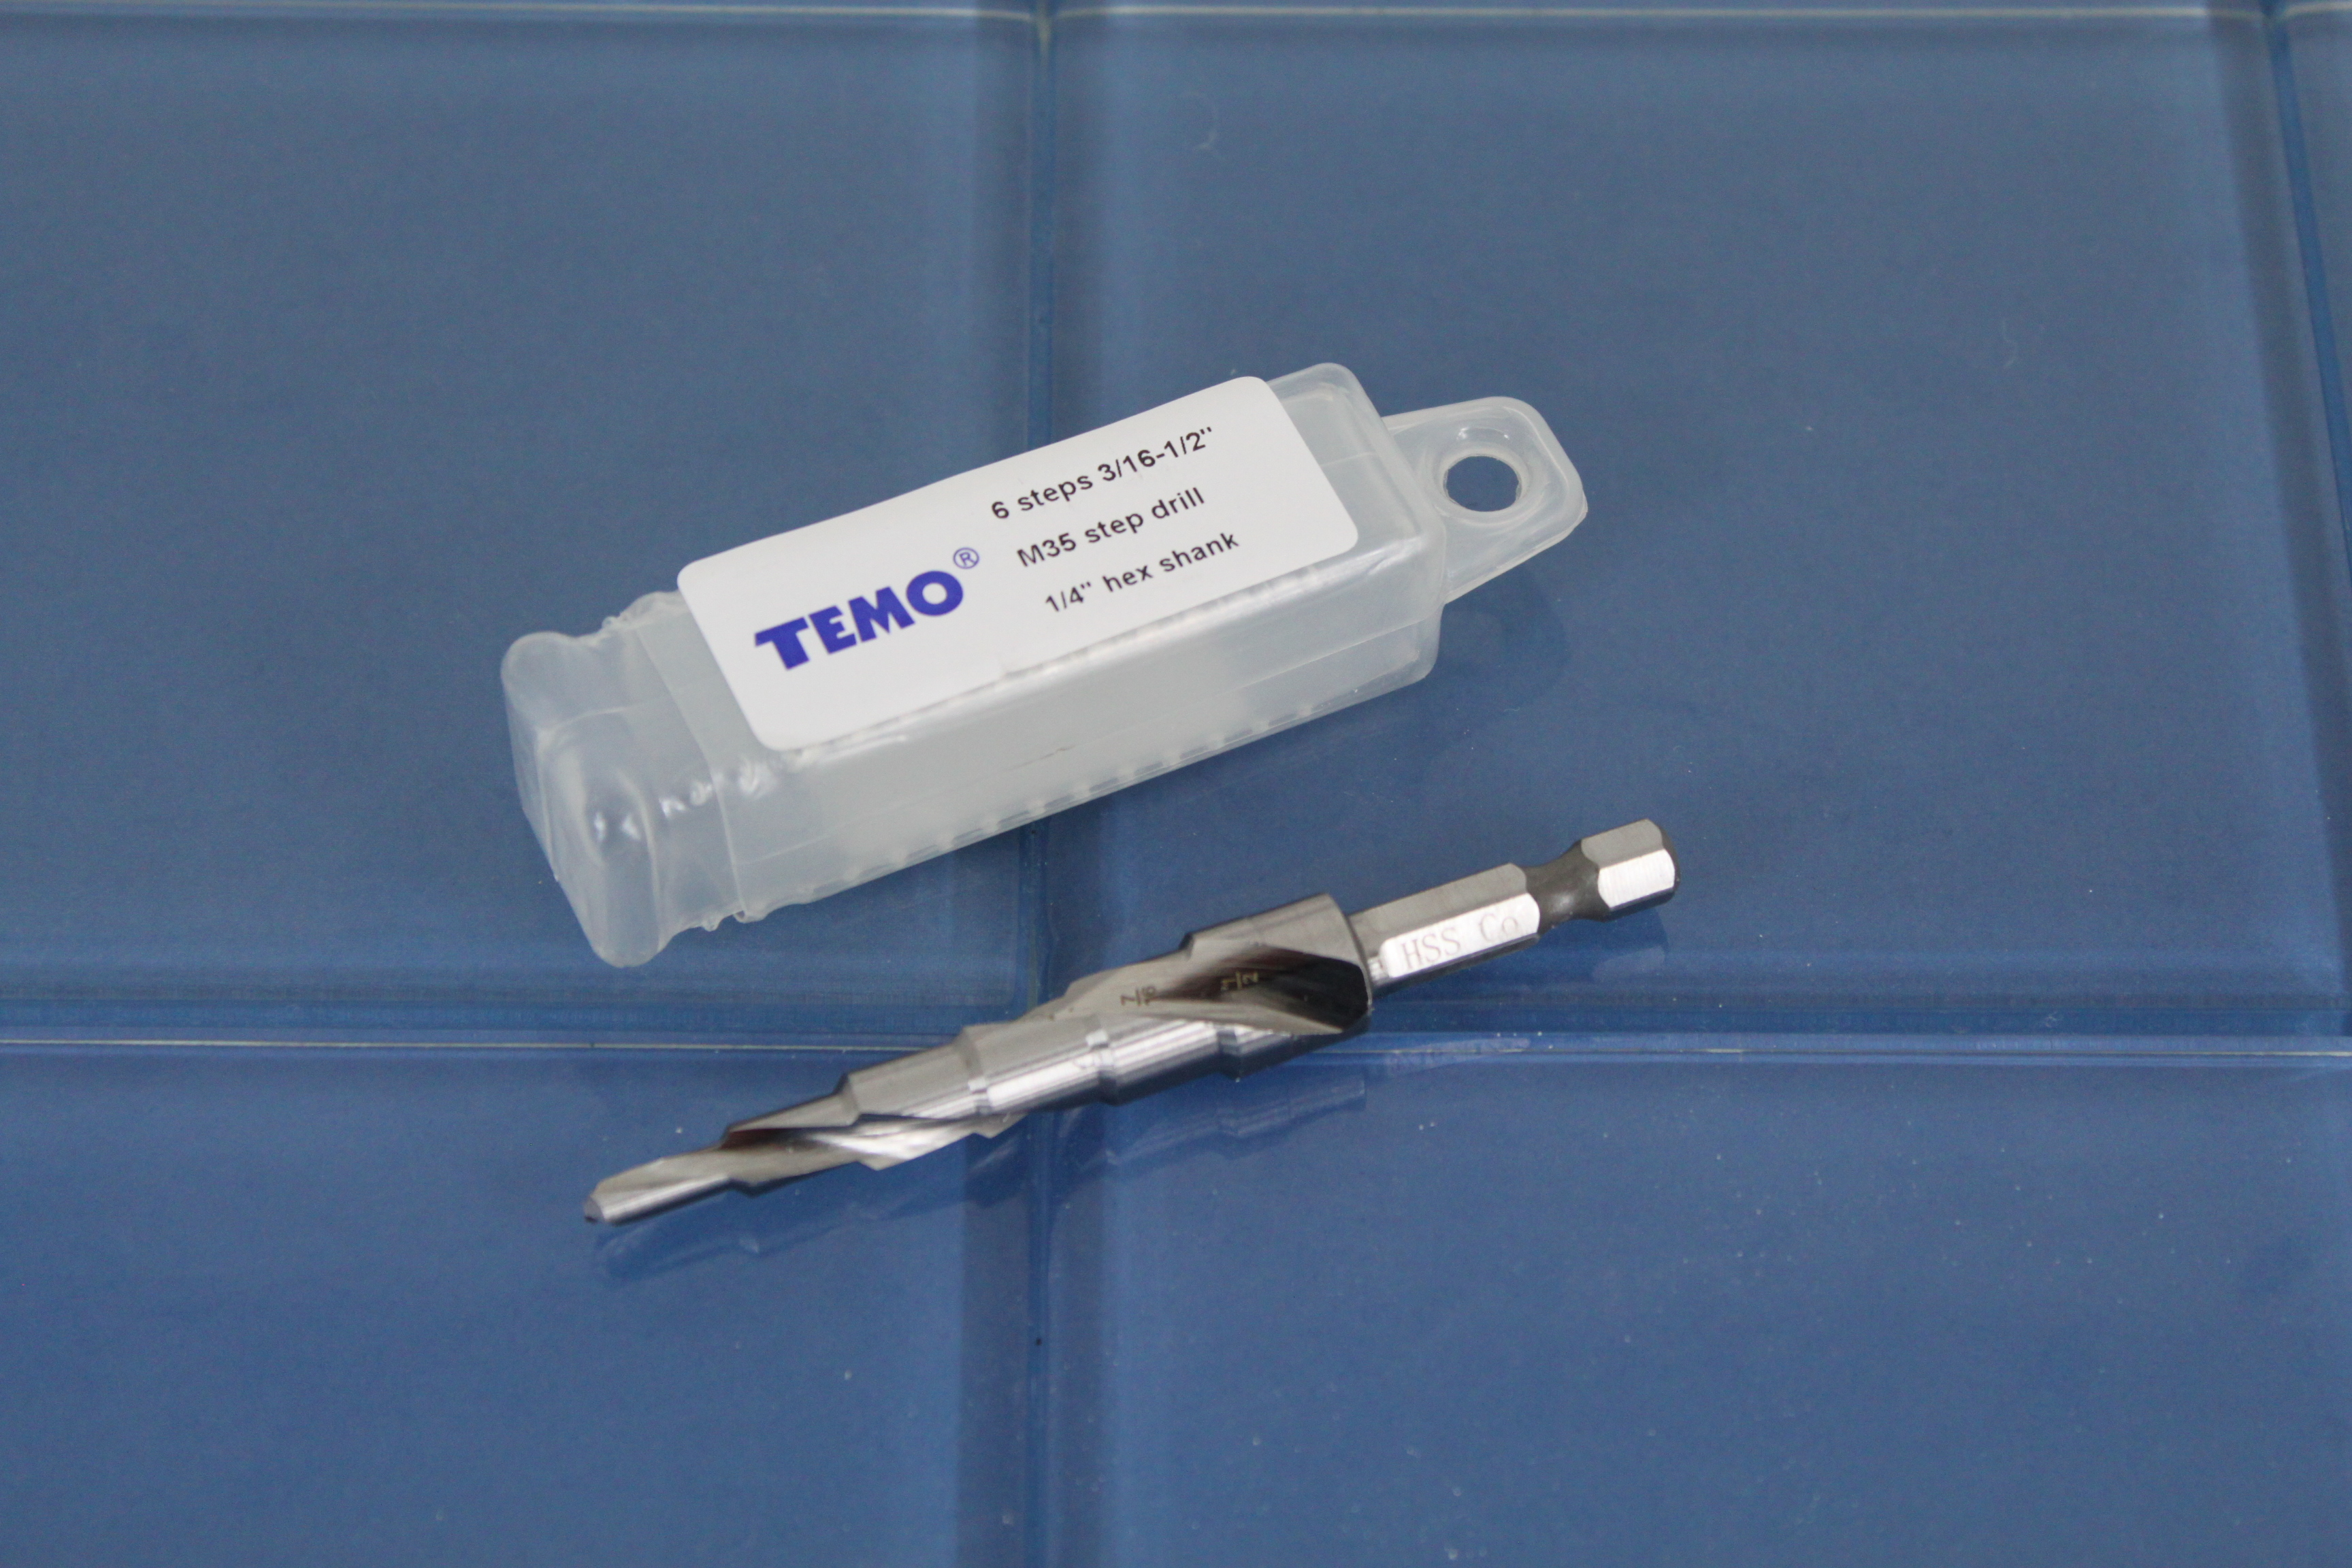 1//4 inch Hex Shank TEMO M35 Cobalt Step Drill Double Flute 4.8mm 6.4mm to 1//2 inch 6 Size from 3//16 inch 12.7mm